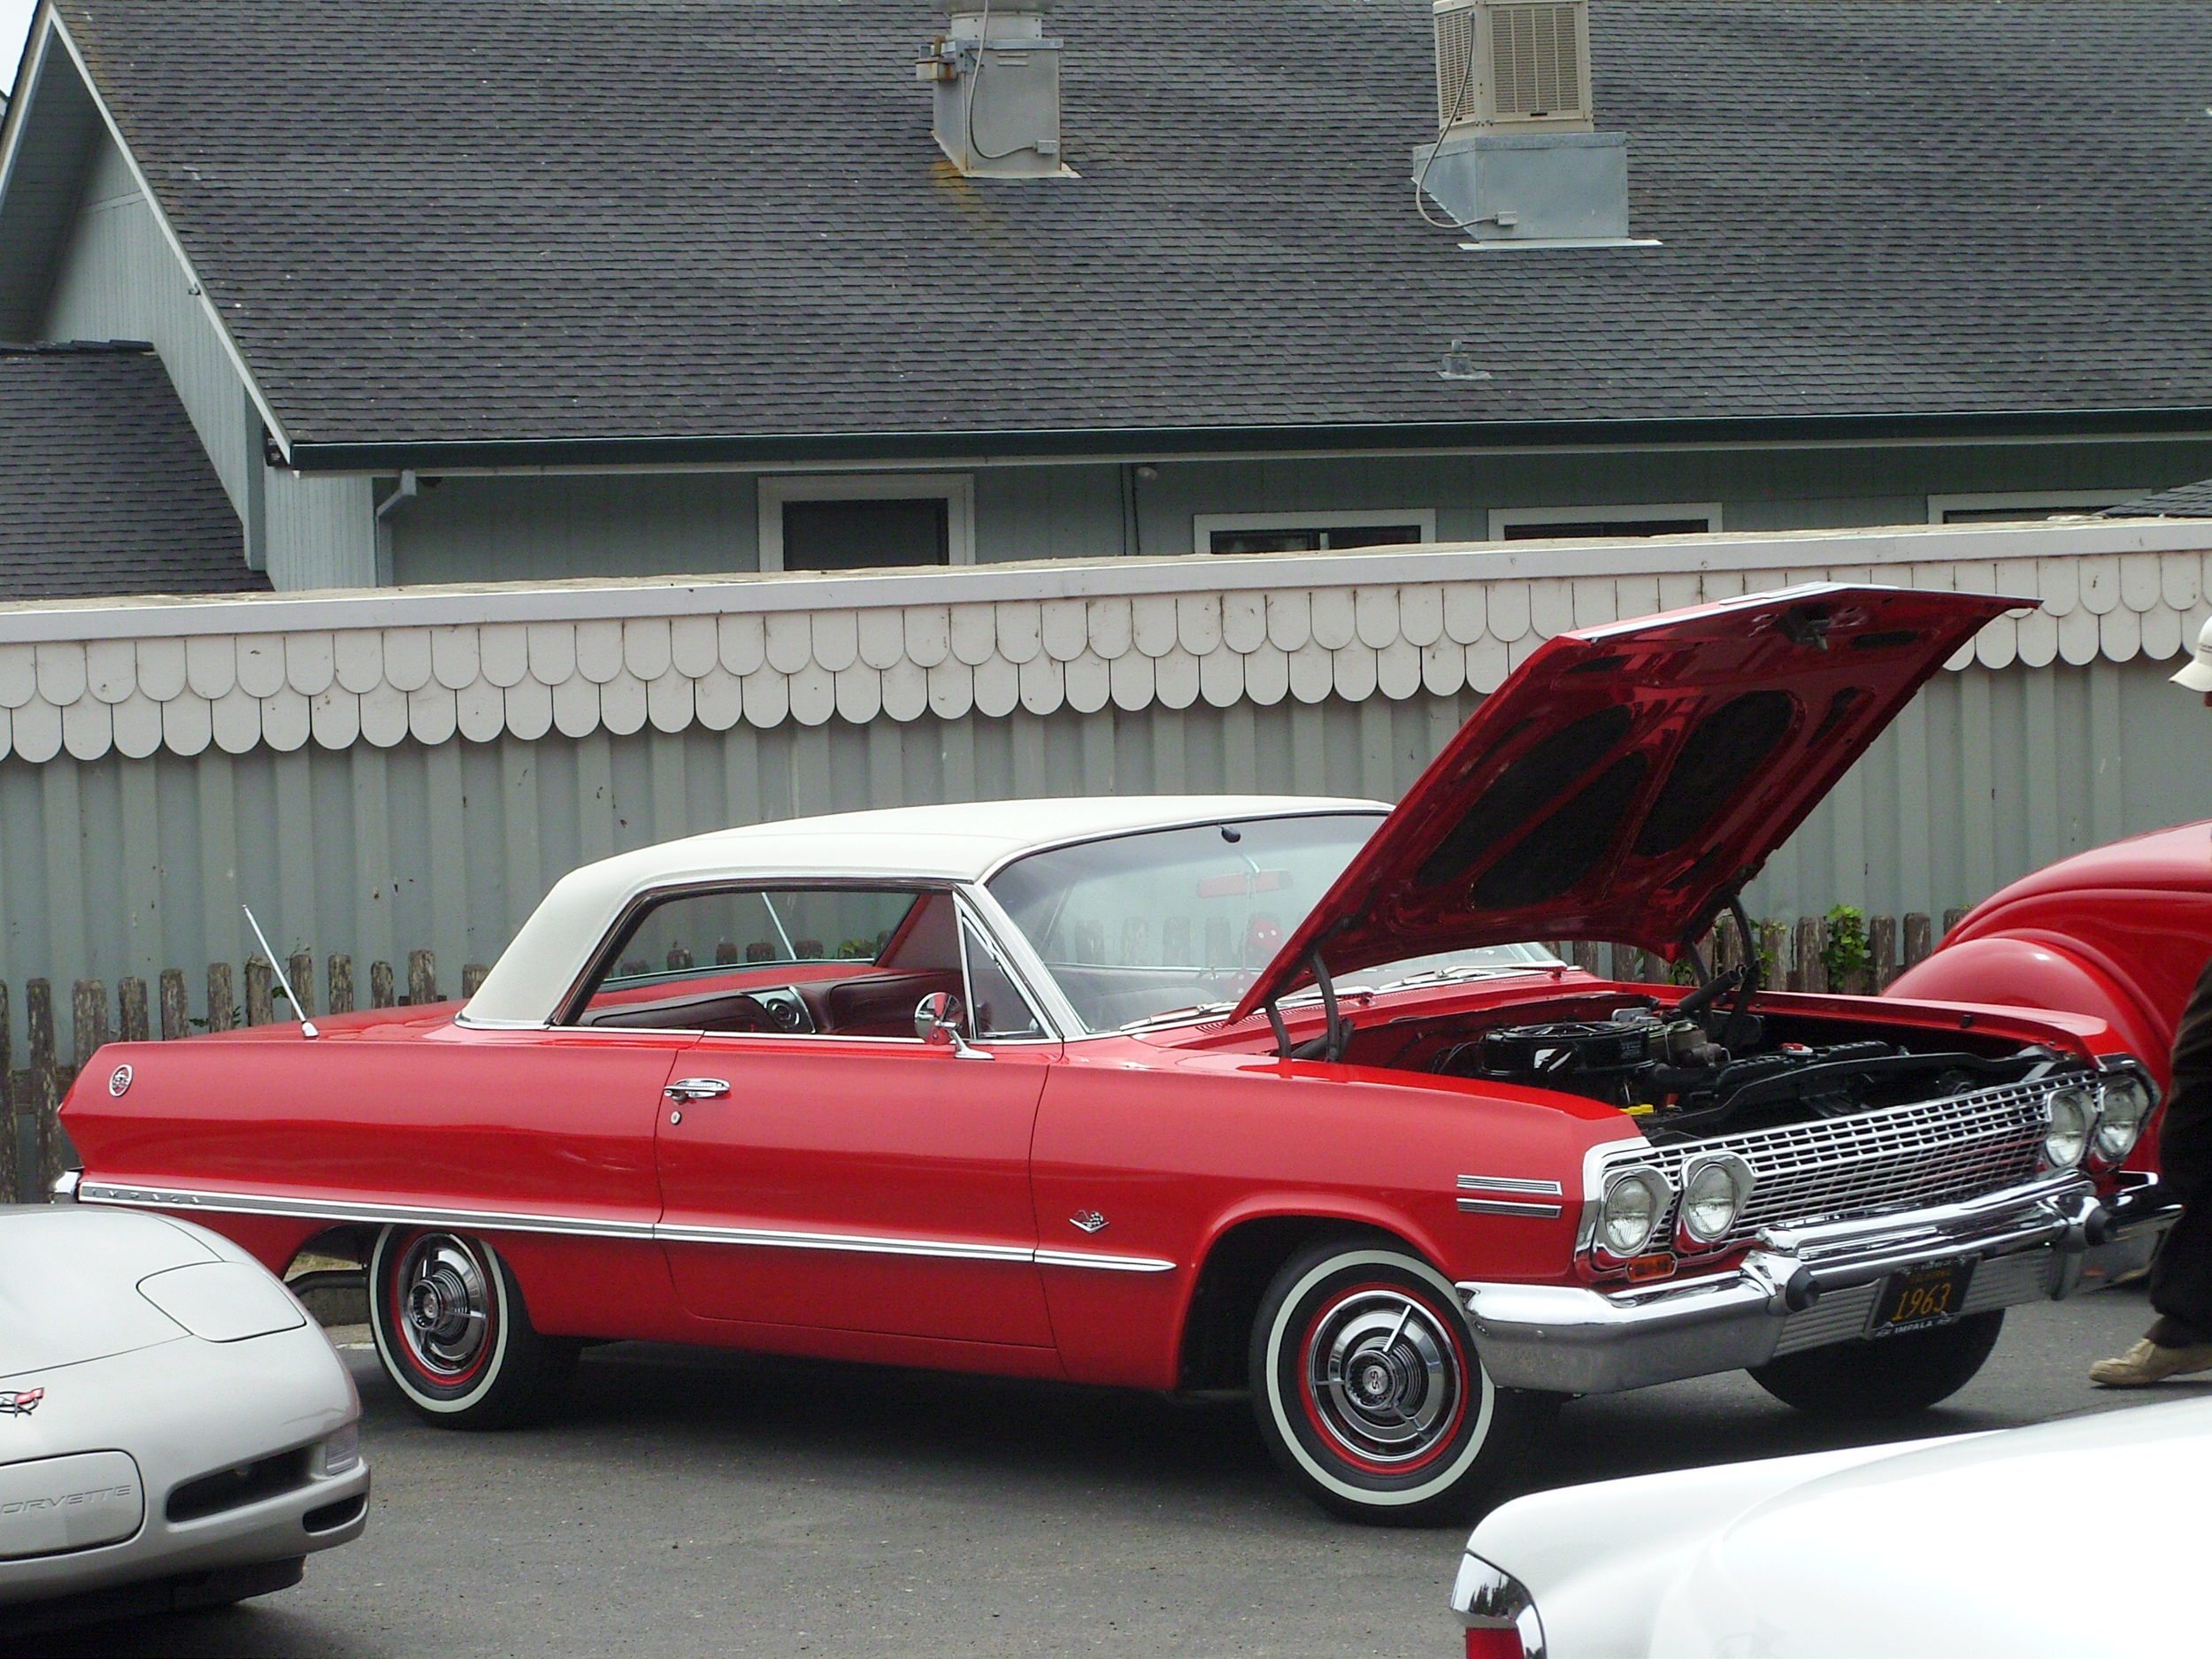 1963 Chevrolet Impala two door